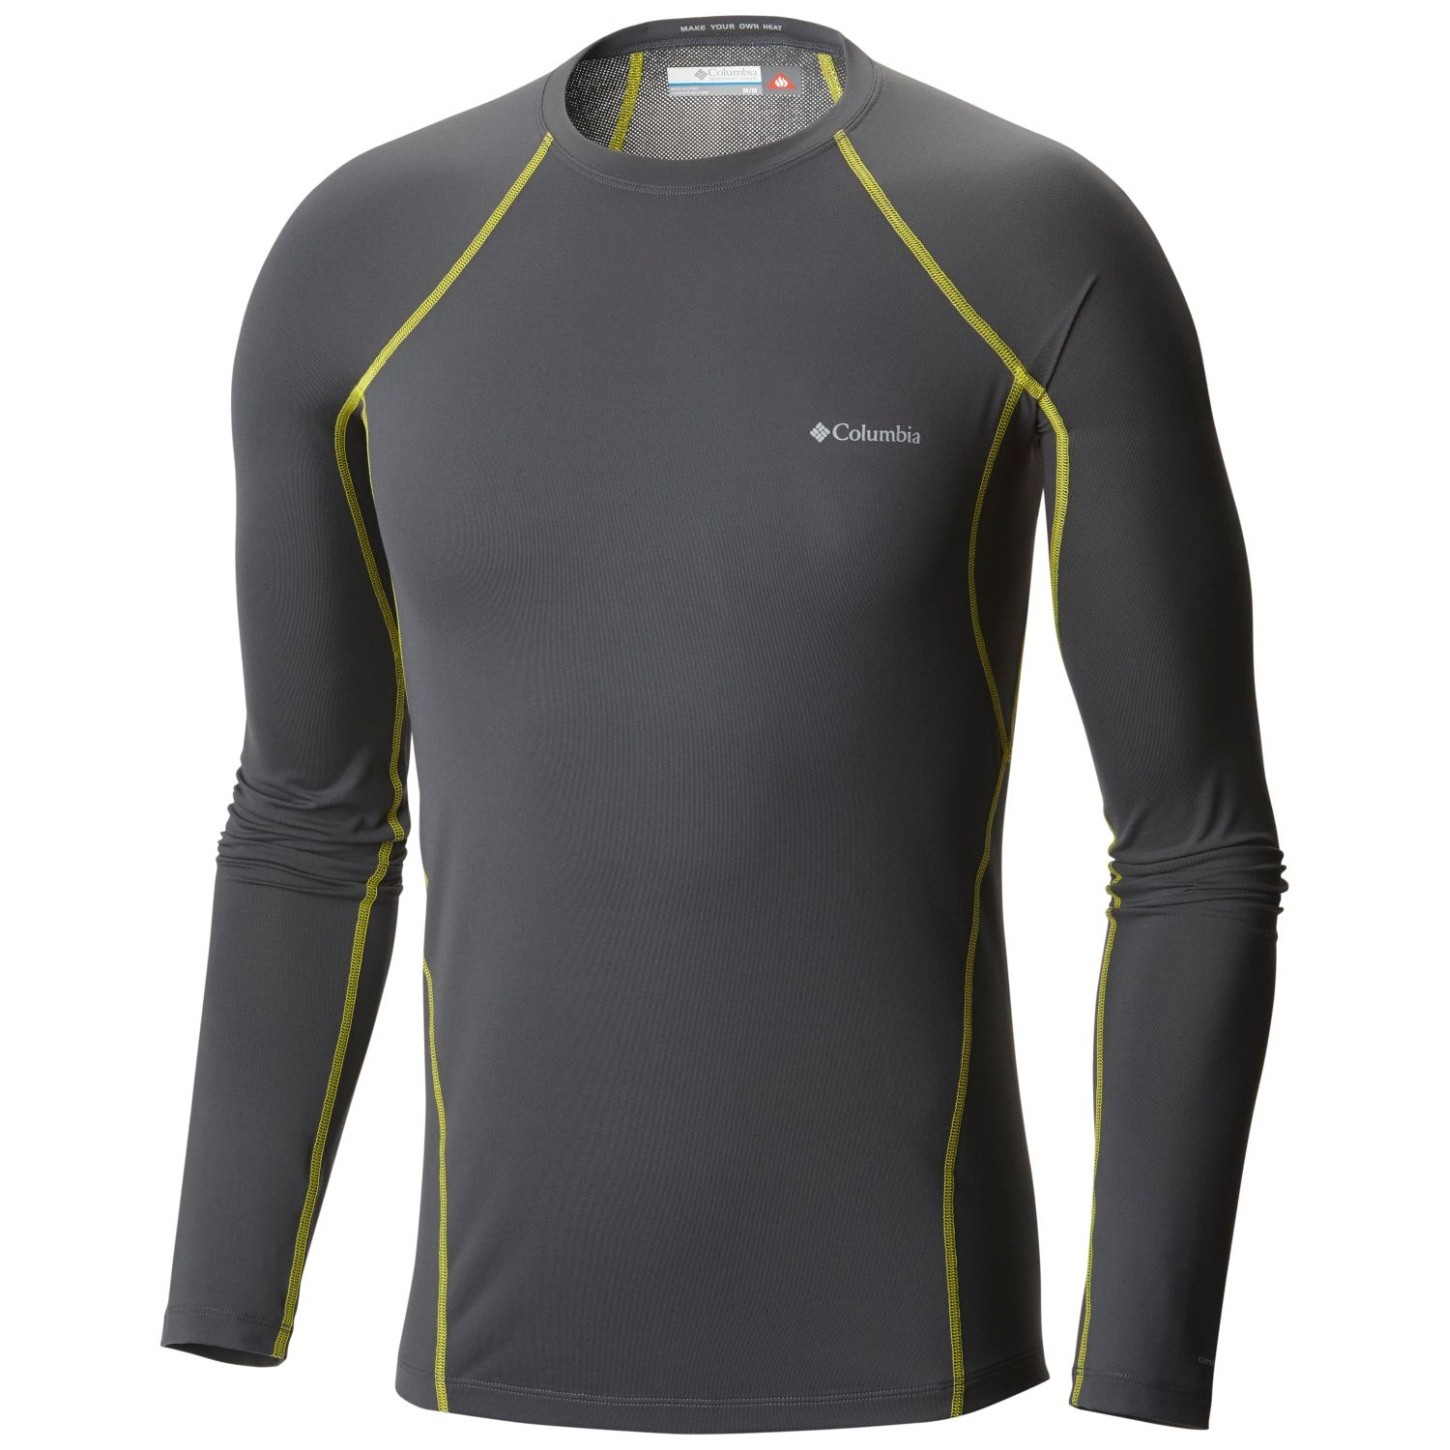 Columbia Midweight Stretch langärmliges Top für Herren Graphite, Acid Yellow-30